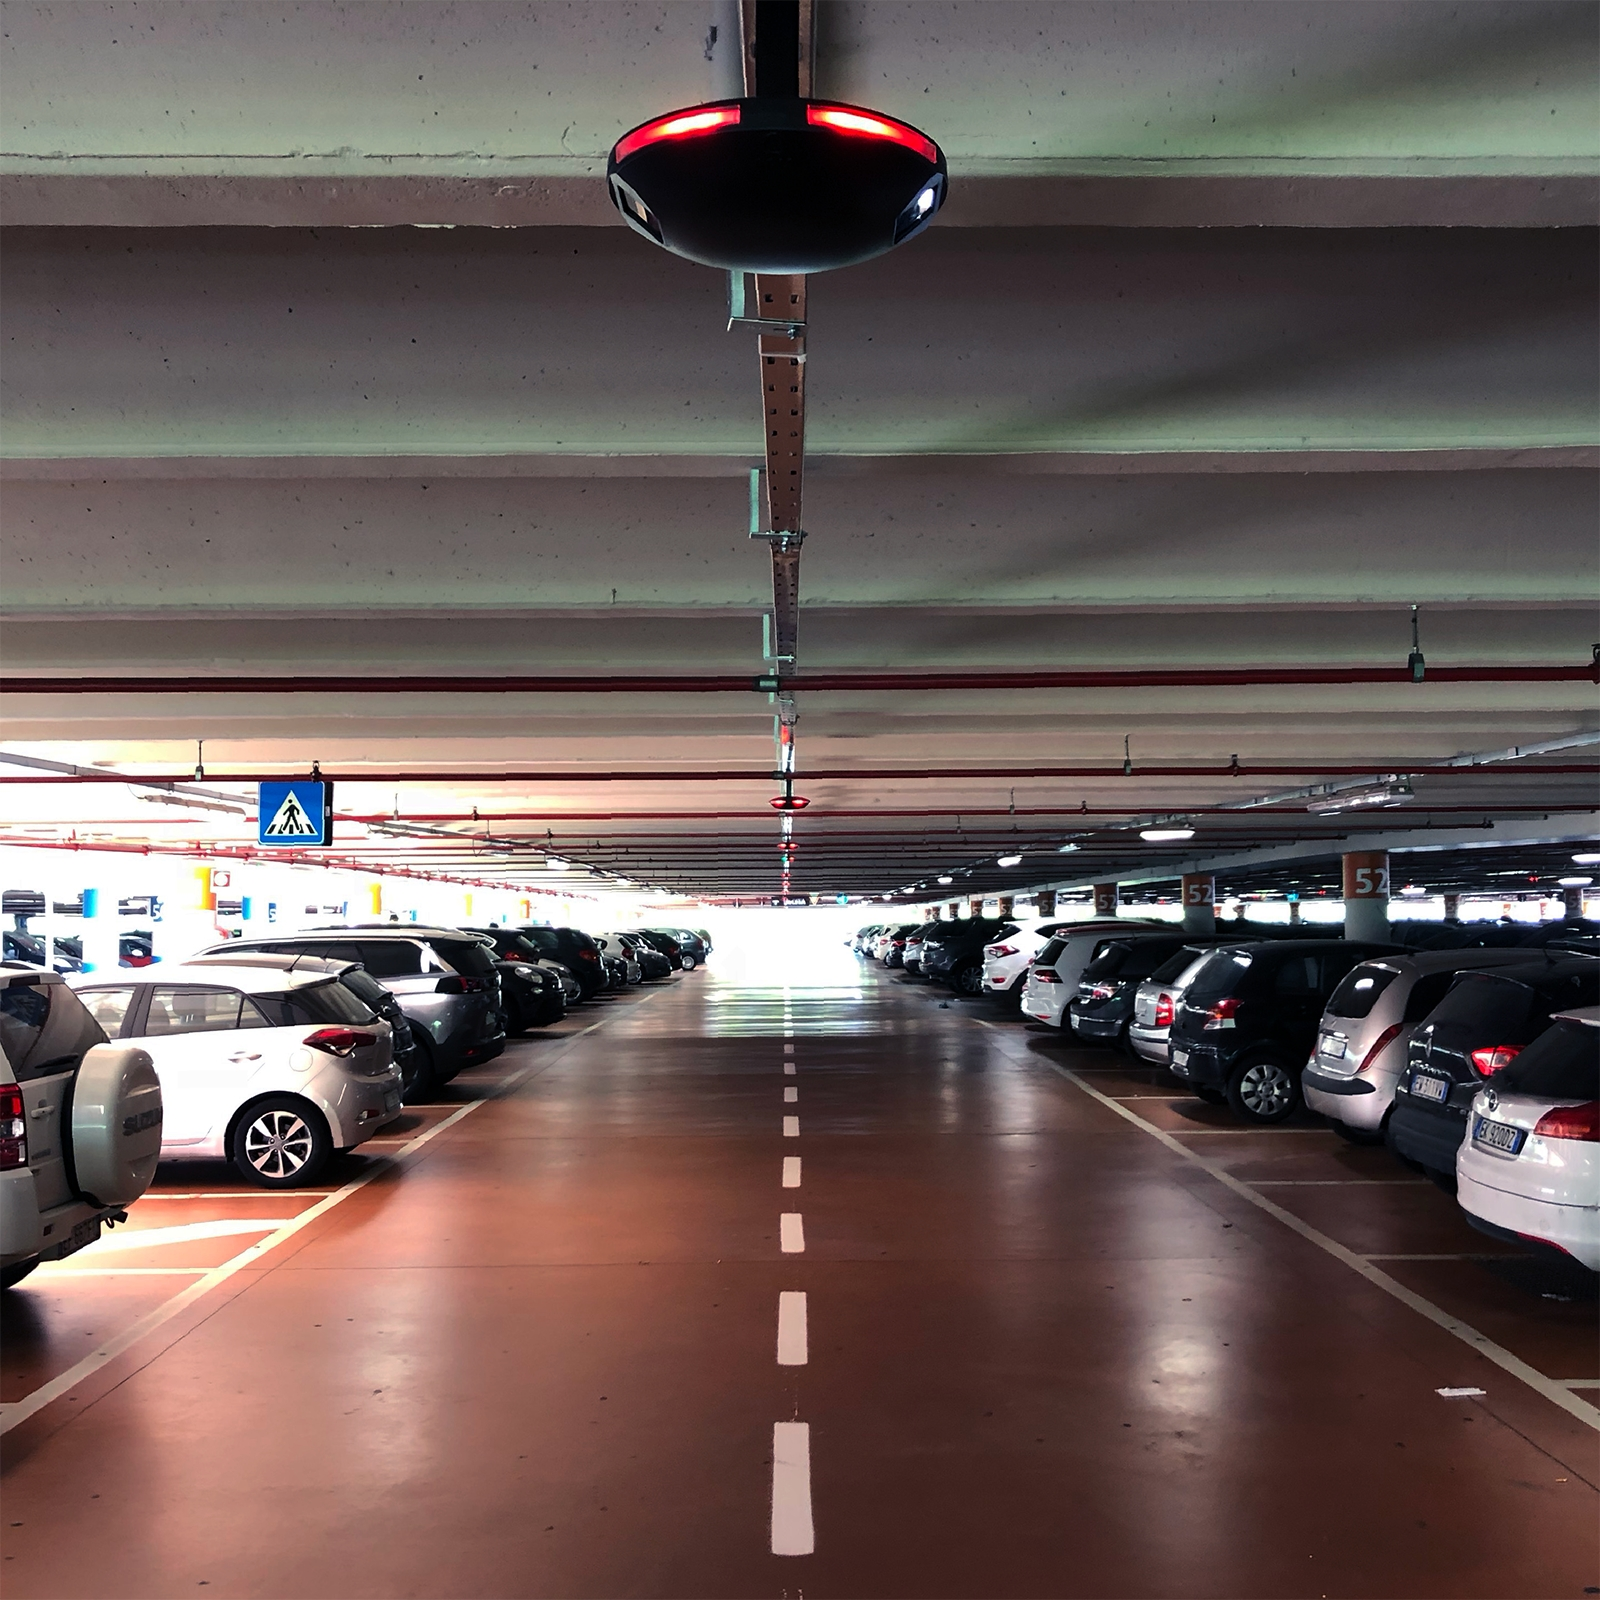 SHOPPING MALL [IL CENTRO] of ARESE | the most complete parking guidance system Agla Group